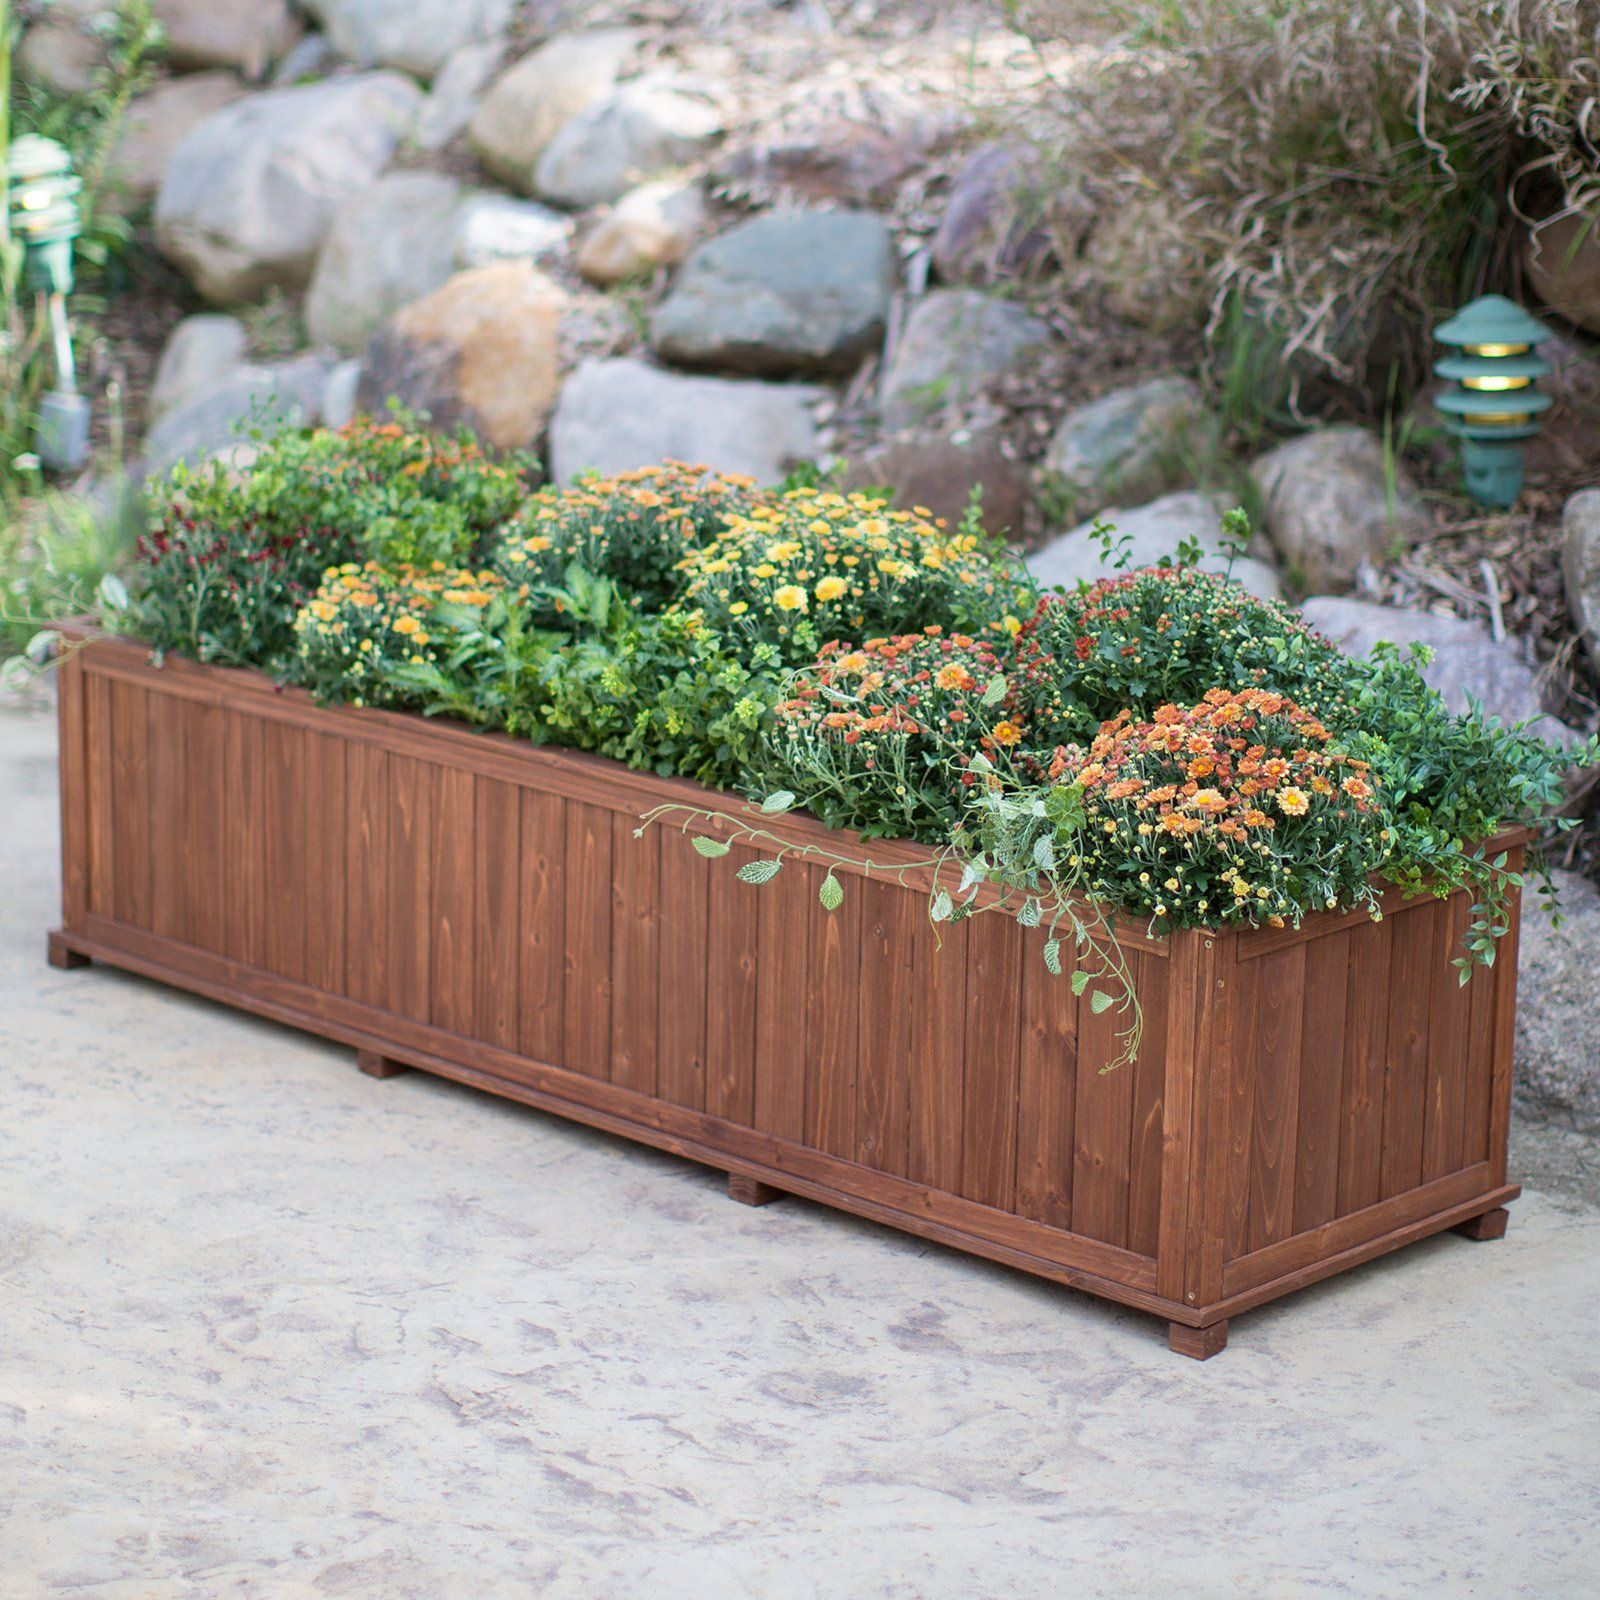 Coral coast rectangular wood aster patio planter box 70 in and 41 coral coast rectangular wood aster patio planter box 70 in and 41 in workwithnaturefo